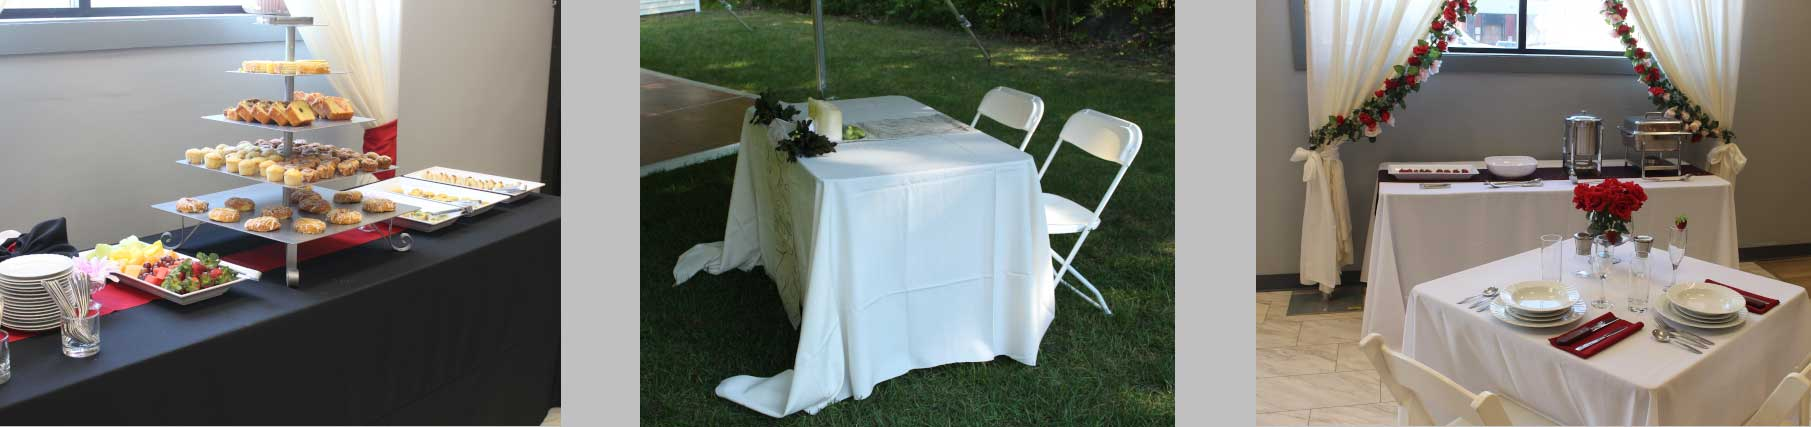 Event rentals in all of New Hampshire